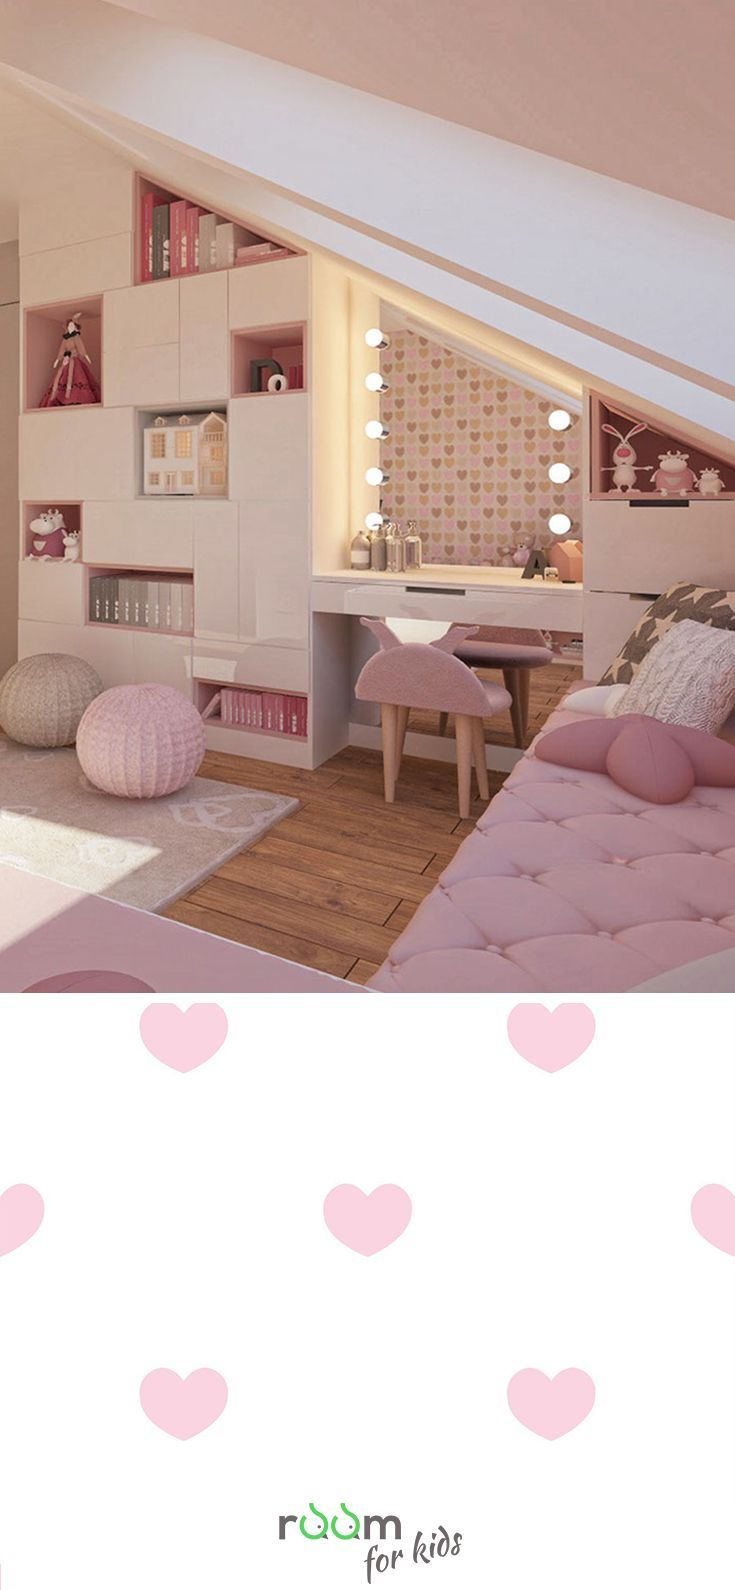 gestaltungsidee f r ein m dchenzimmer im rosa design room pin pinterest kinderzimmer. Black Bedroom Furniture Sets. Home Design Ideas